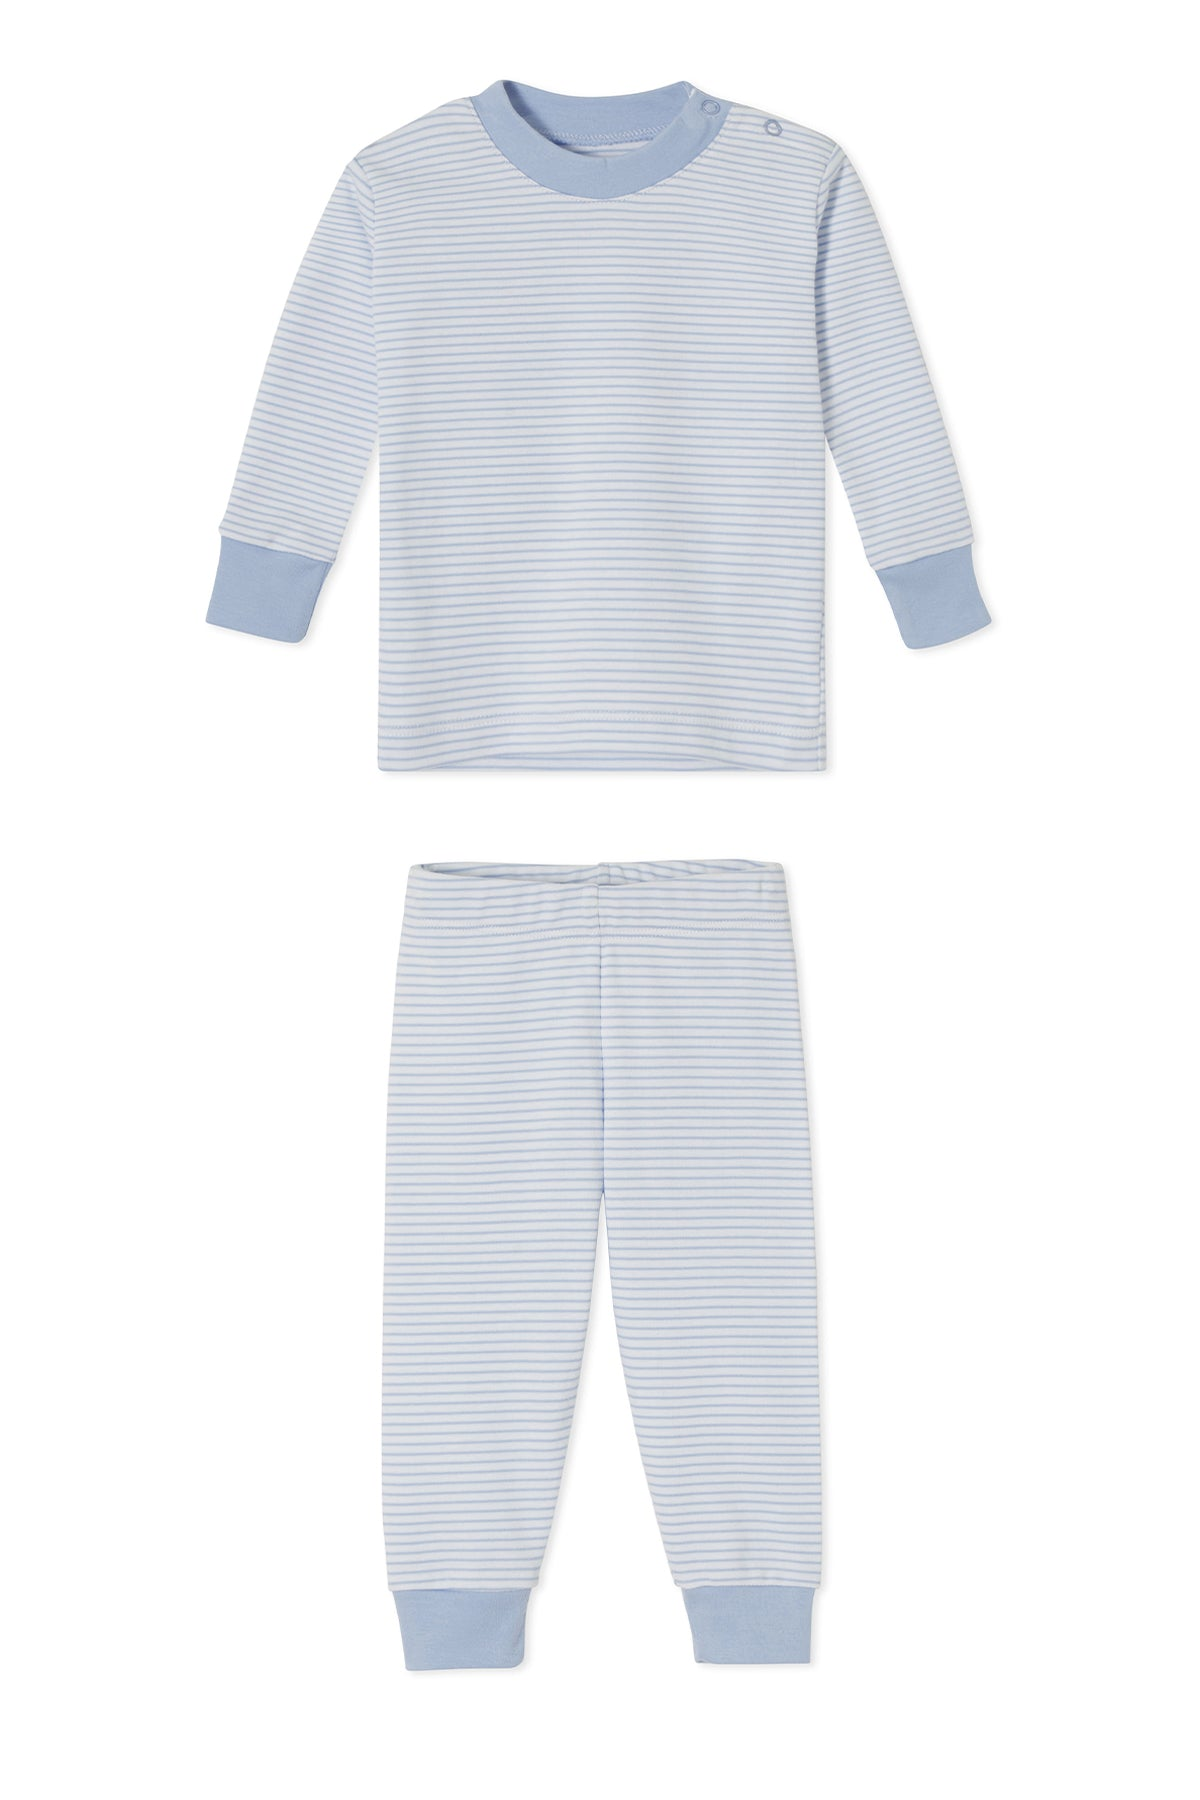 Baby Long-Long Set in French Blue